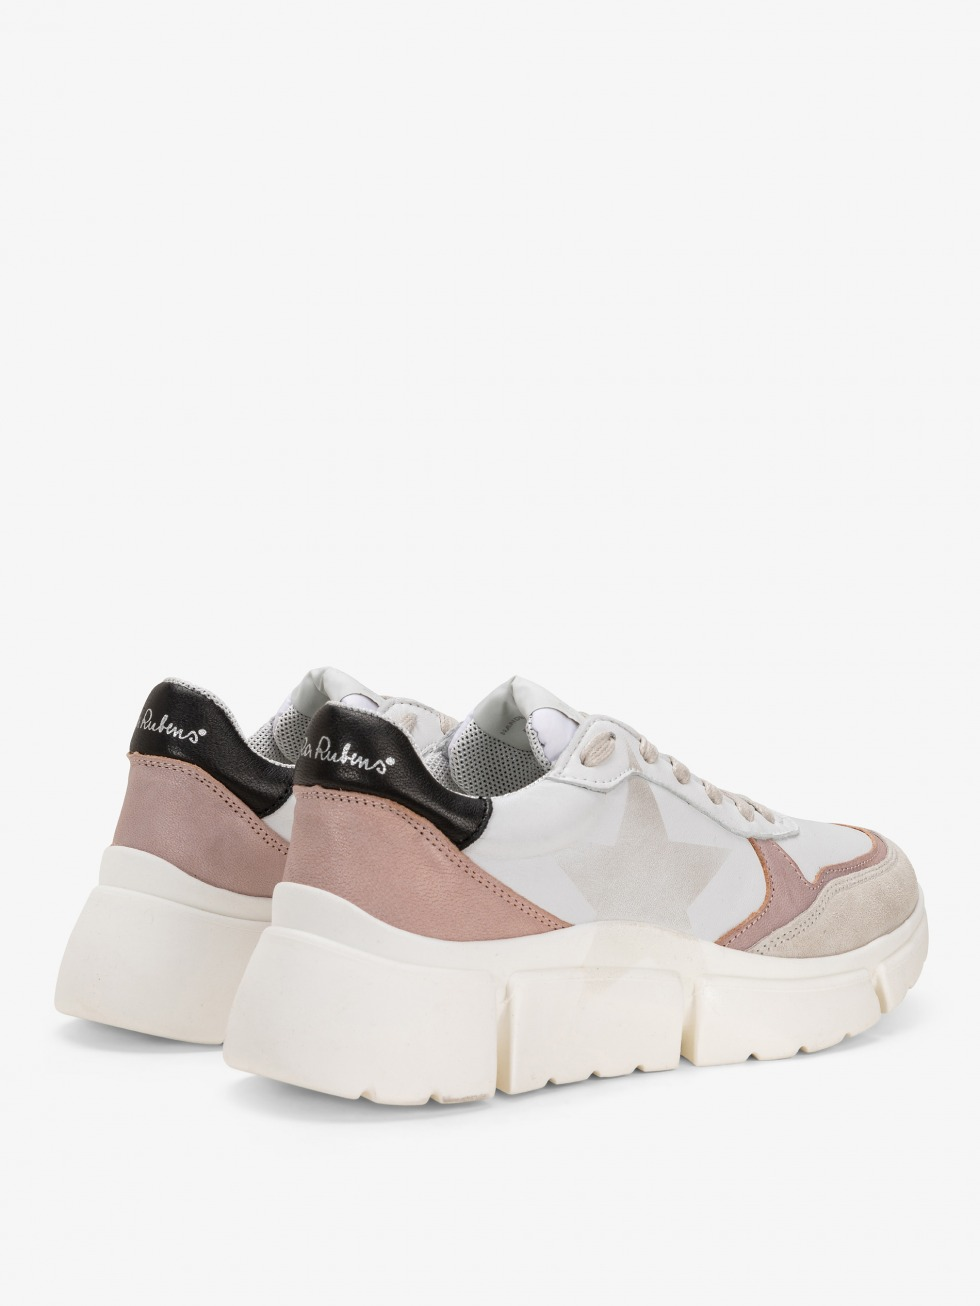 Stinger Chunky Nude Sneakers - Star